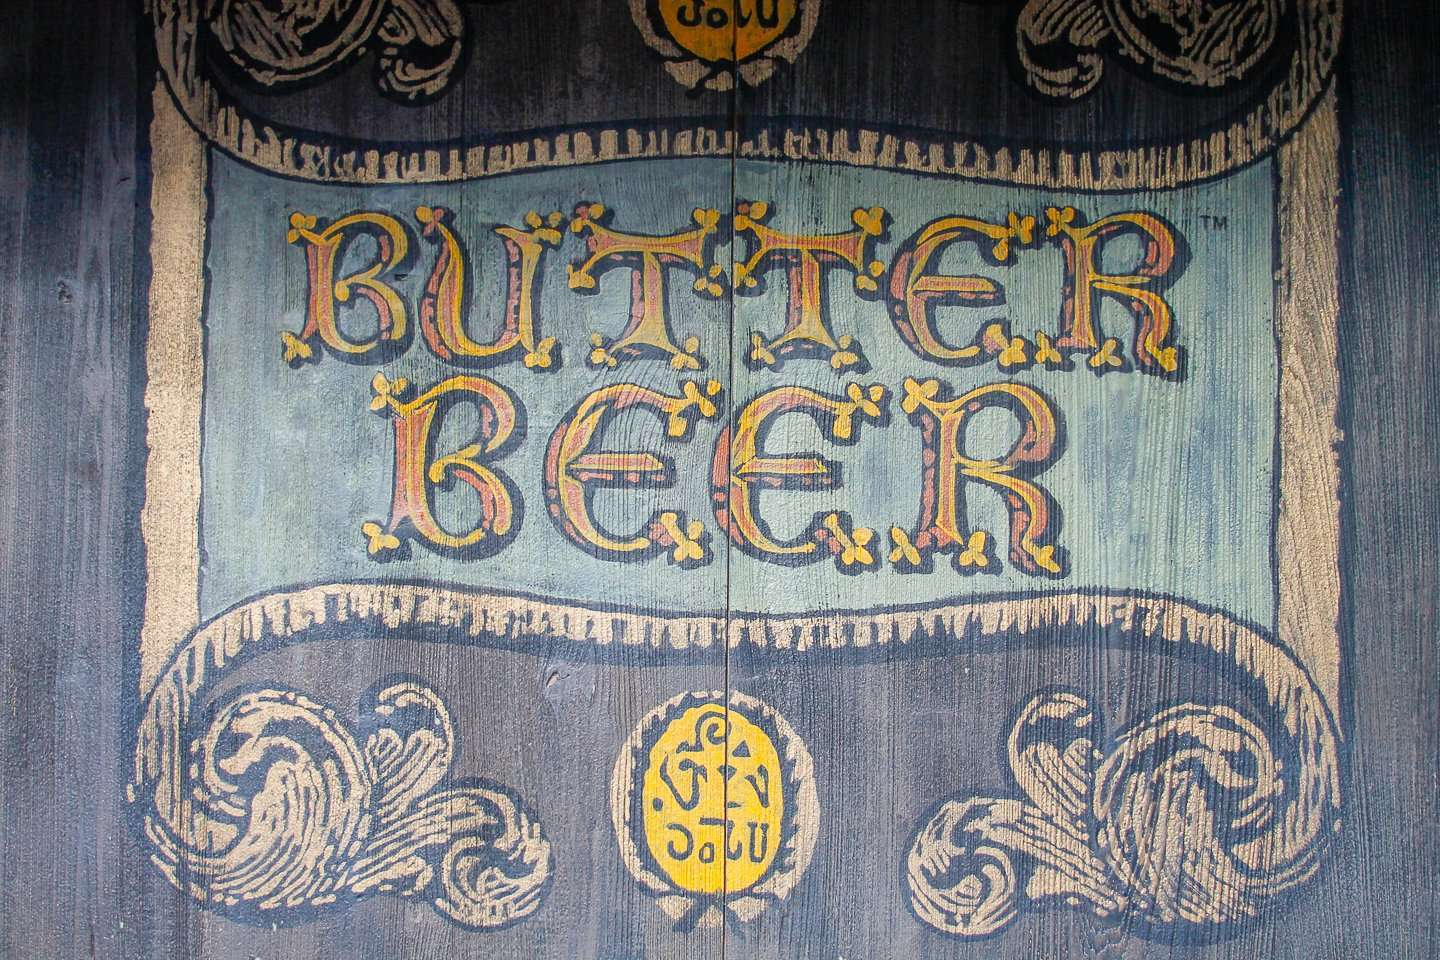 Where to Find Butterbeer at Universal Studios Orlando